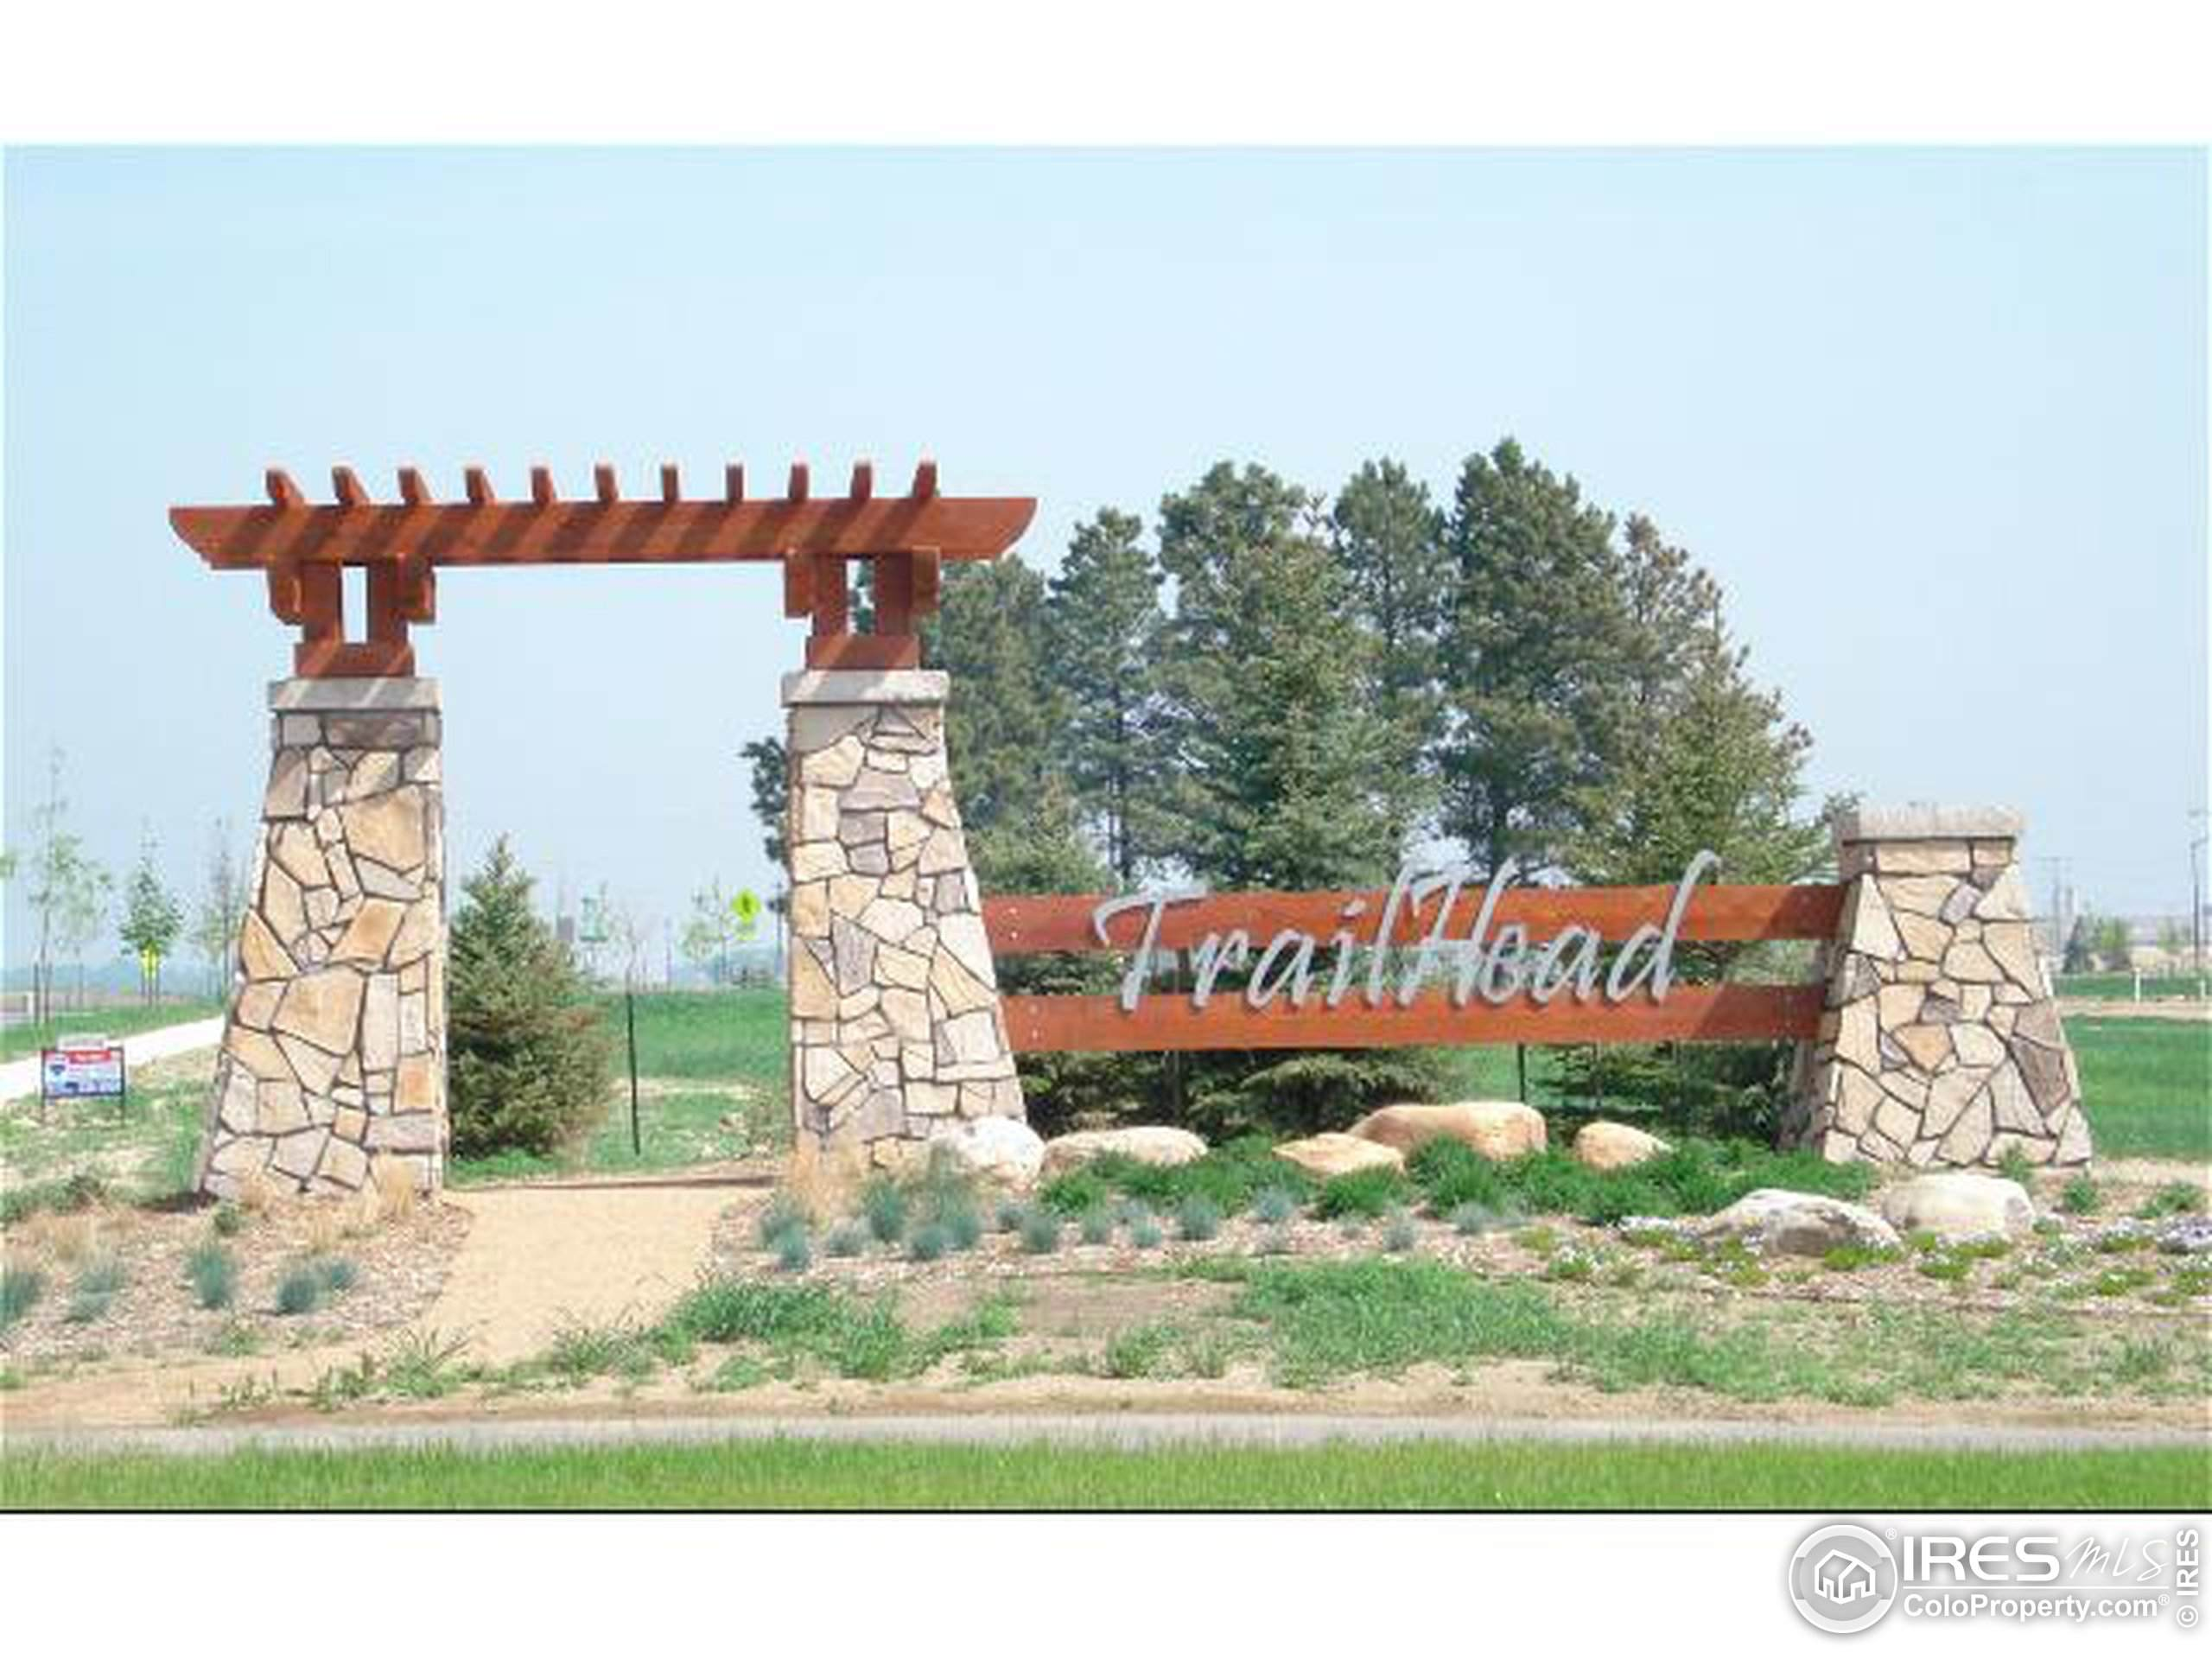 1405 W 141st Ct, Westminster, CO 80023 (MLS #842630) :: 8z Real Estate